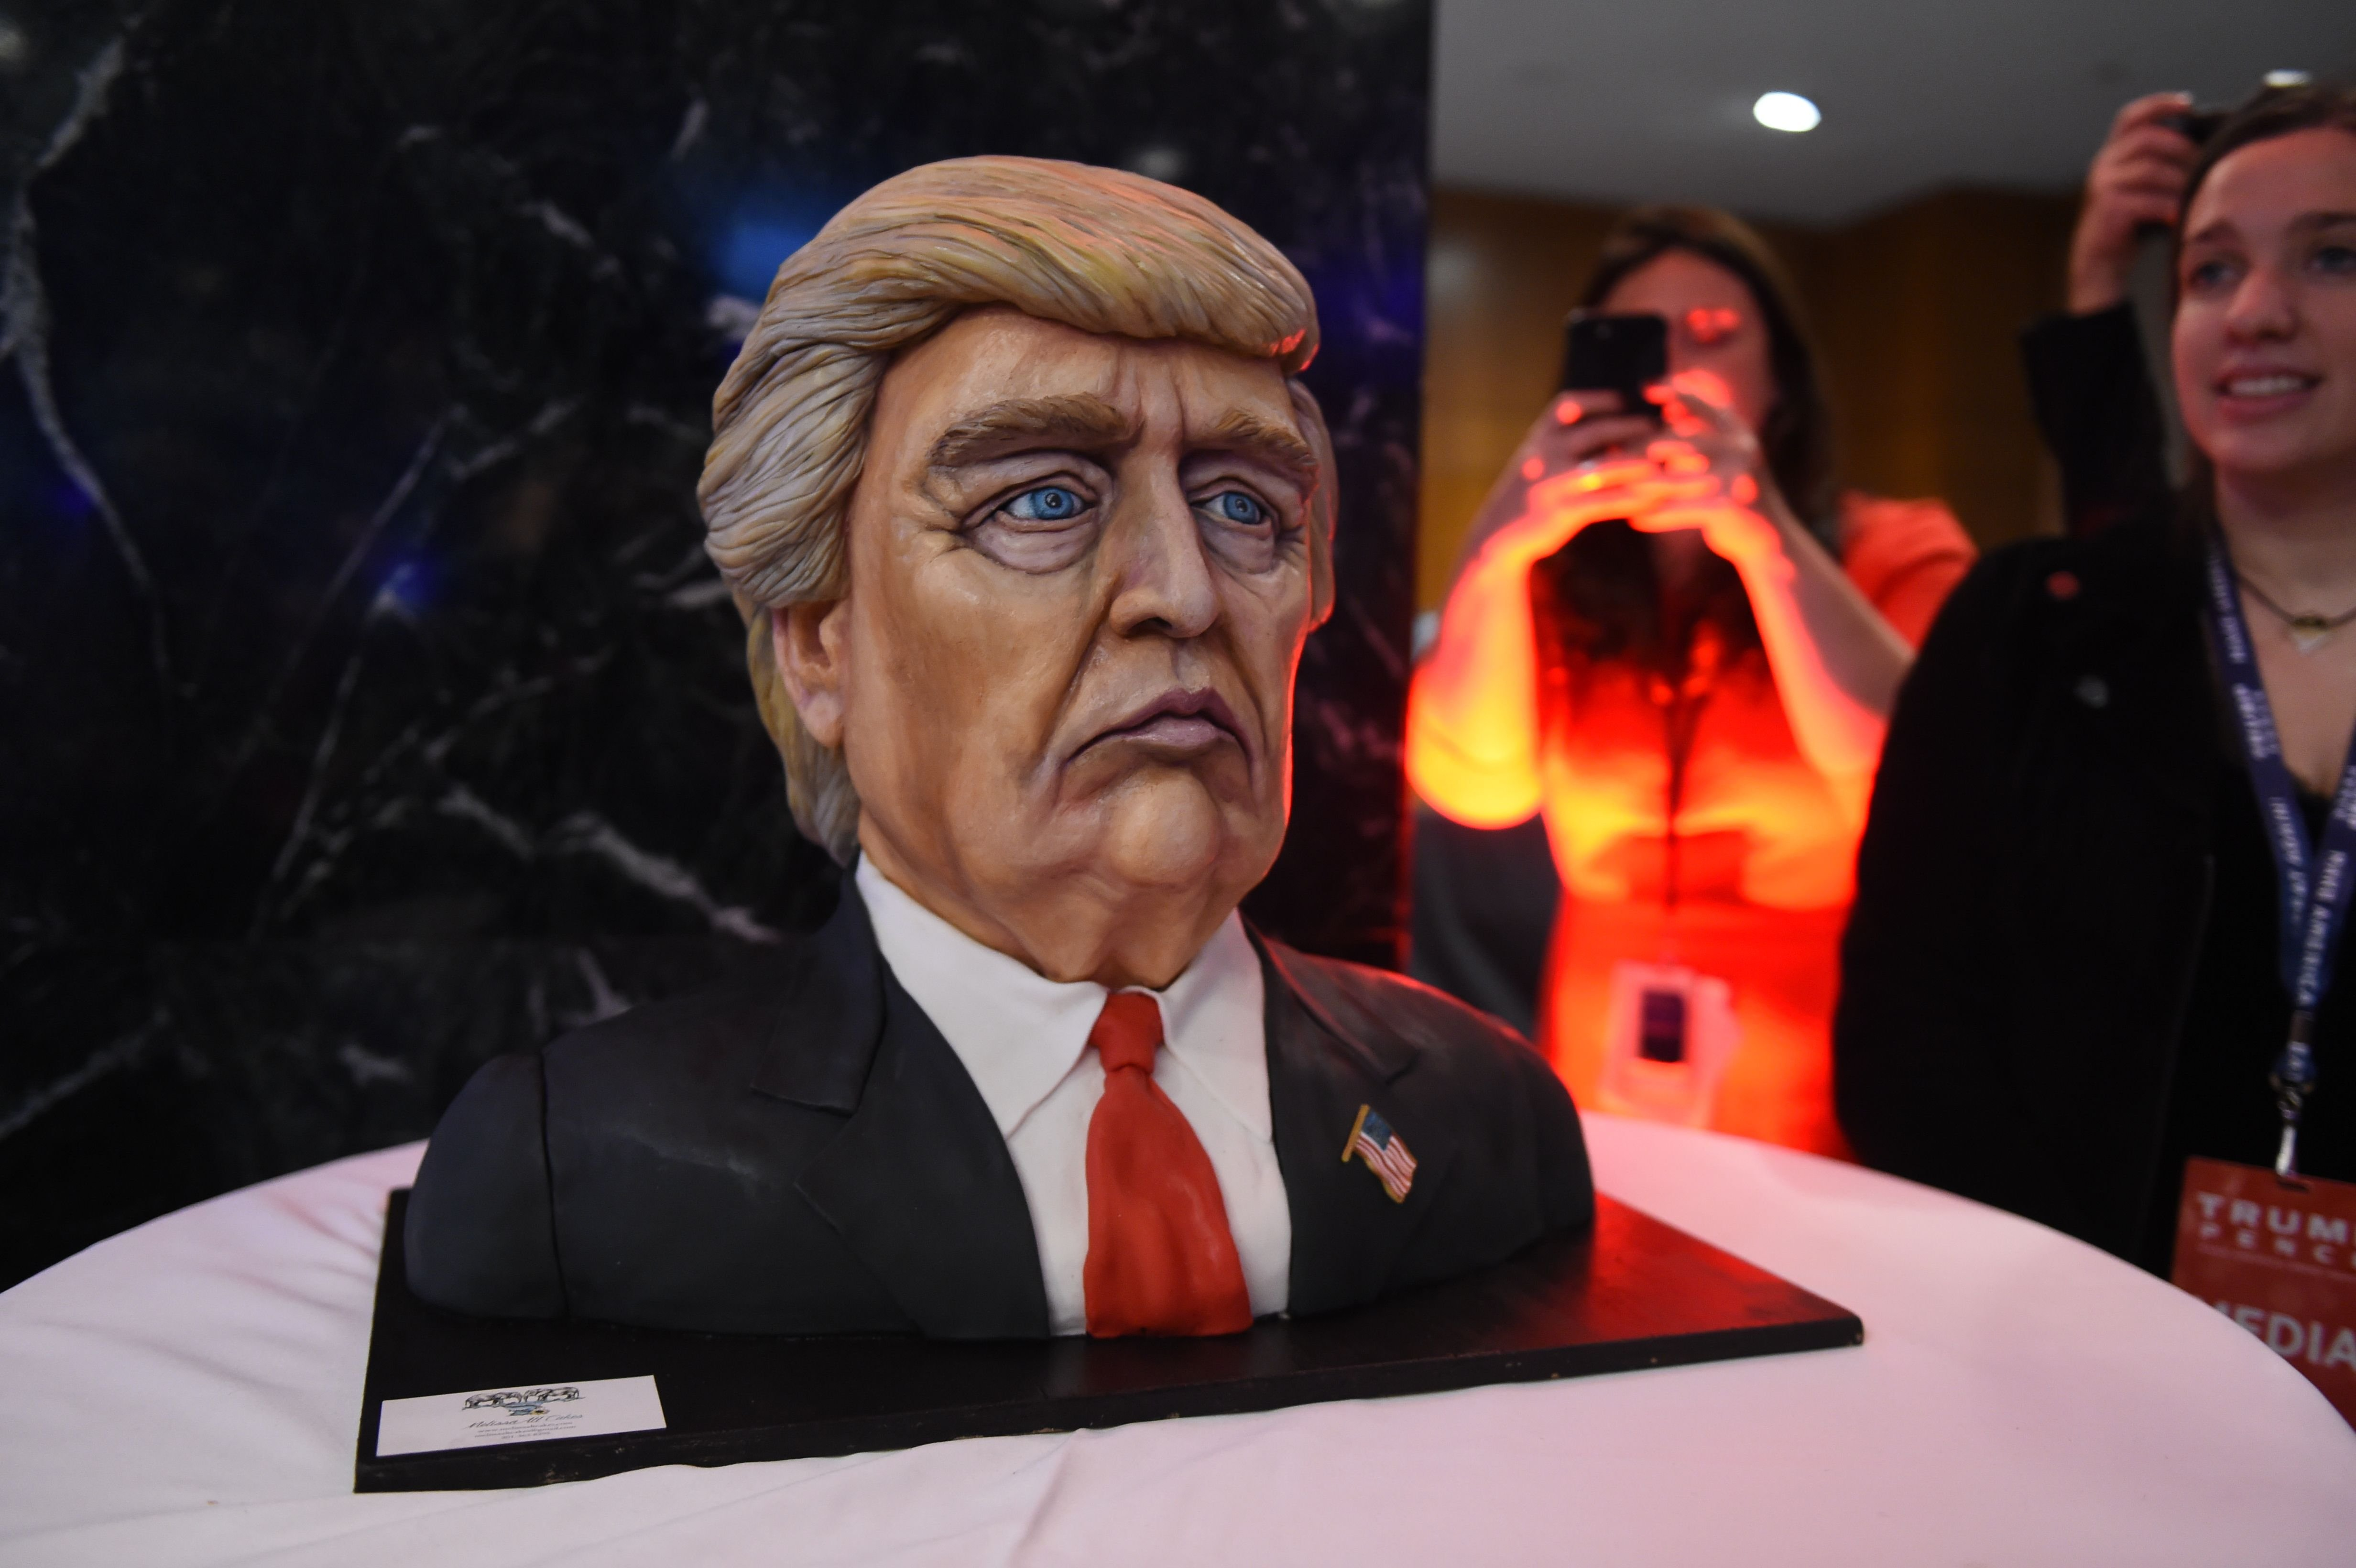 A cake in the likeness of  Donald Trump at Donald Trump's election night event at the New York Hilton Midtown in New York.